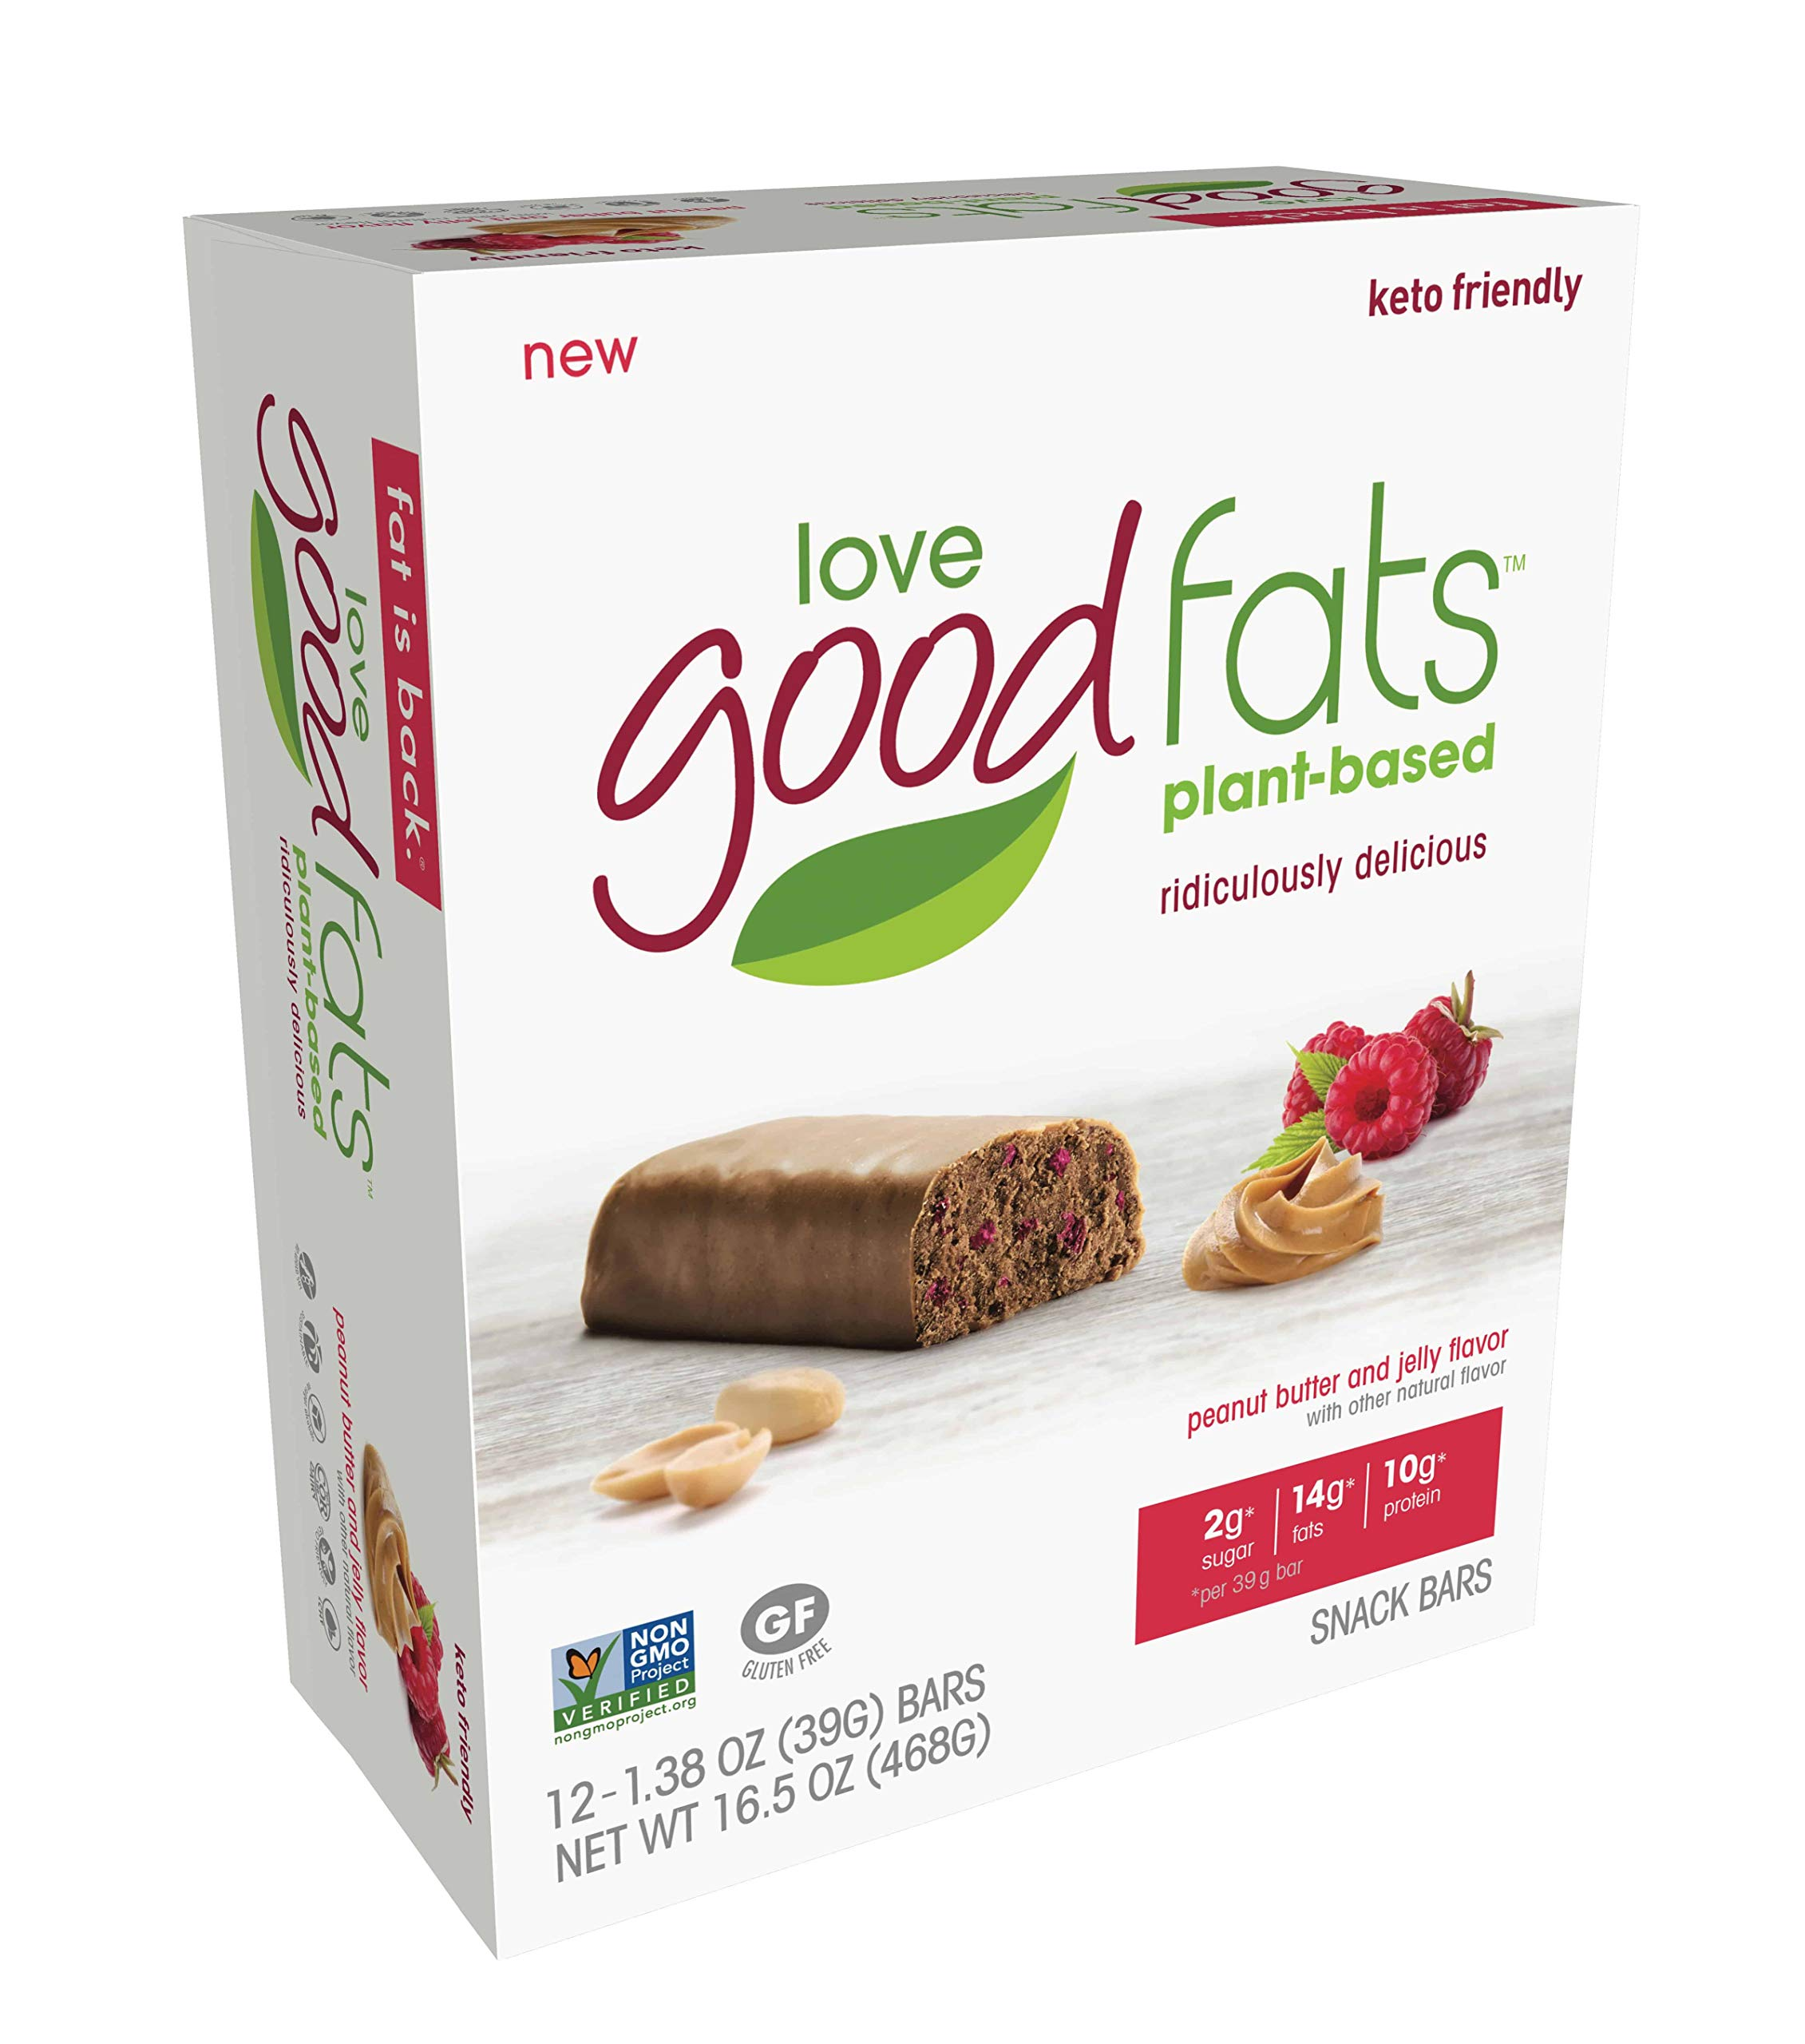 Love Food Fats - Plant Based Bars - Peanut Butter & Jelly - Vegan, Keto Friendly, Low Carb, Low Sugar, Gluten-Free, Non GMO - 1.38 Ounce (12 Pack) by love good fats (Image #2)